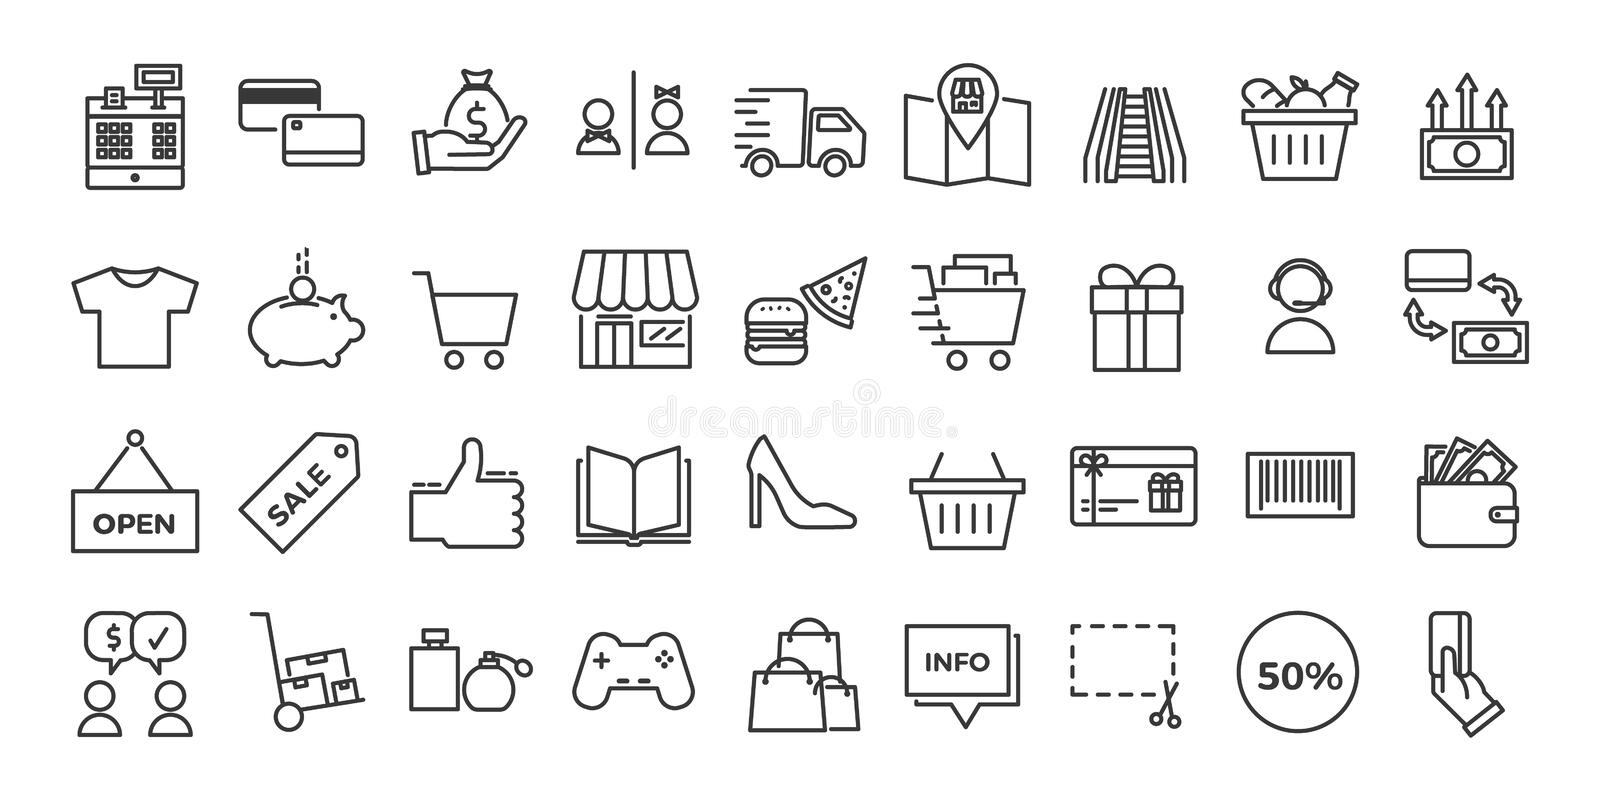 Icons related with commerce, shops, shopping malls, retail. royalty free illustration